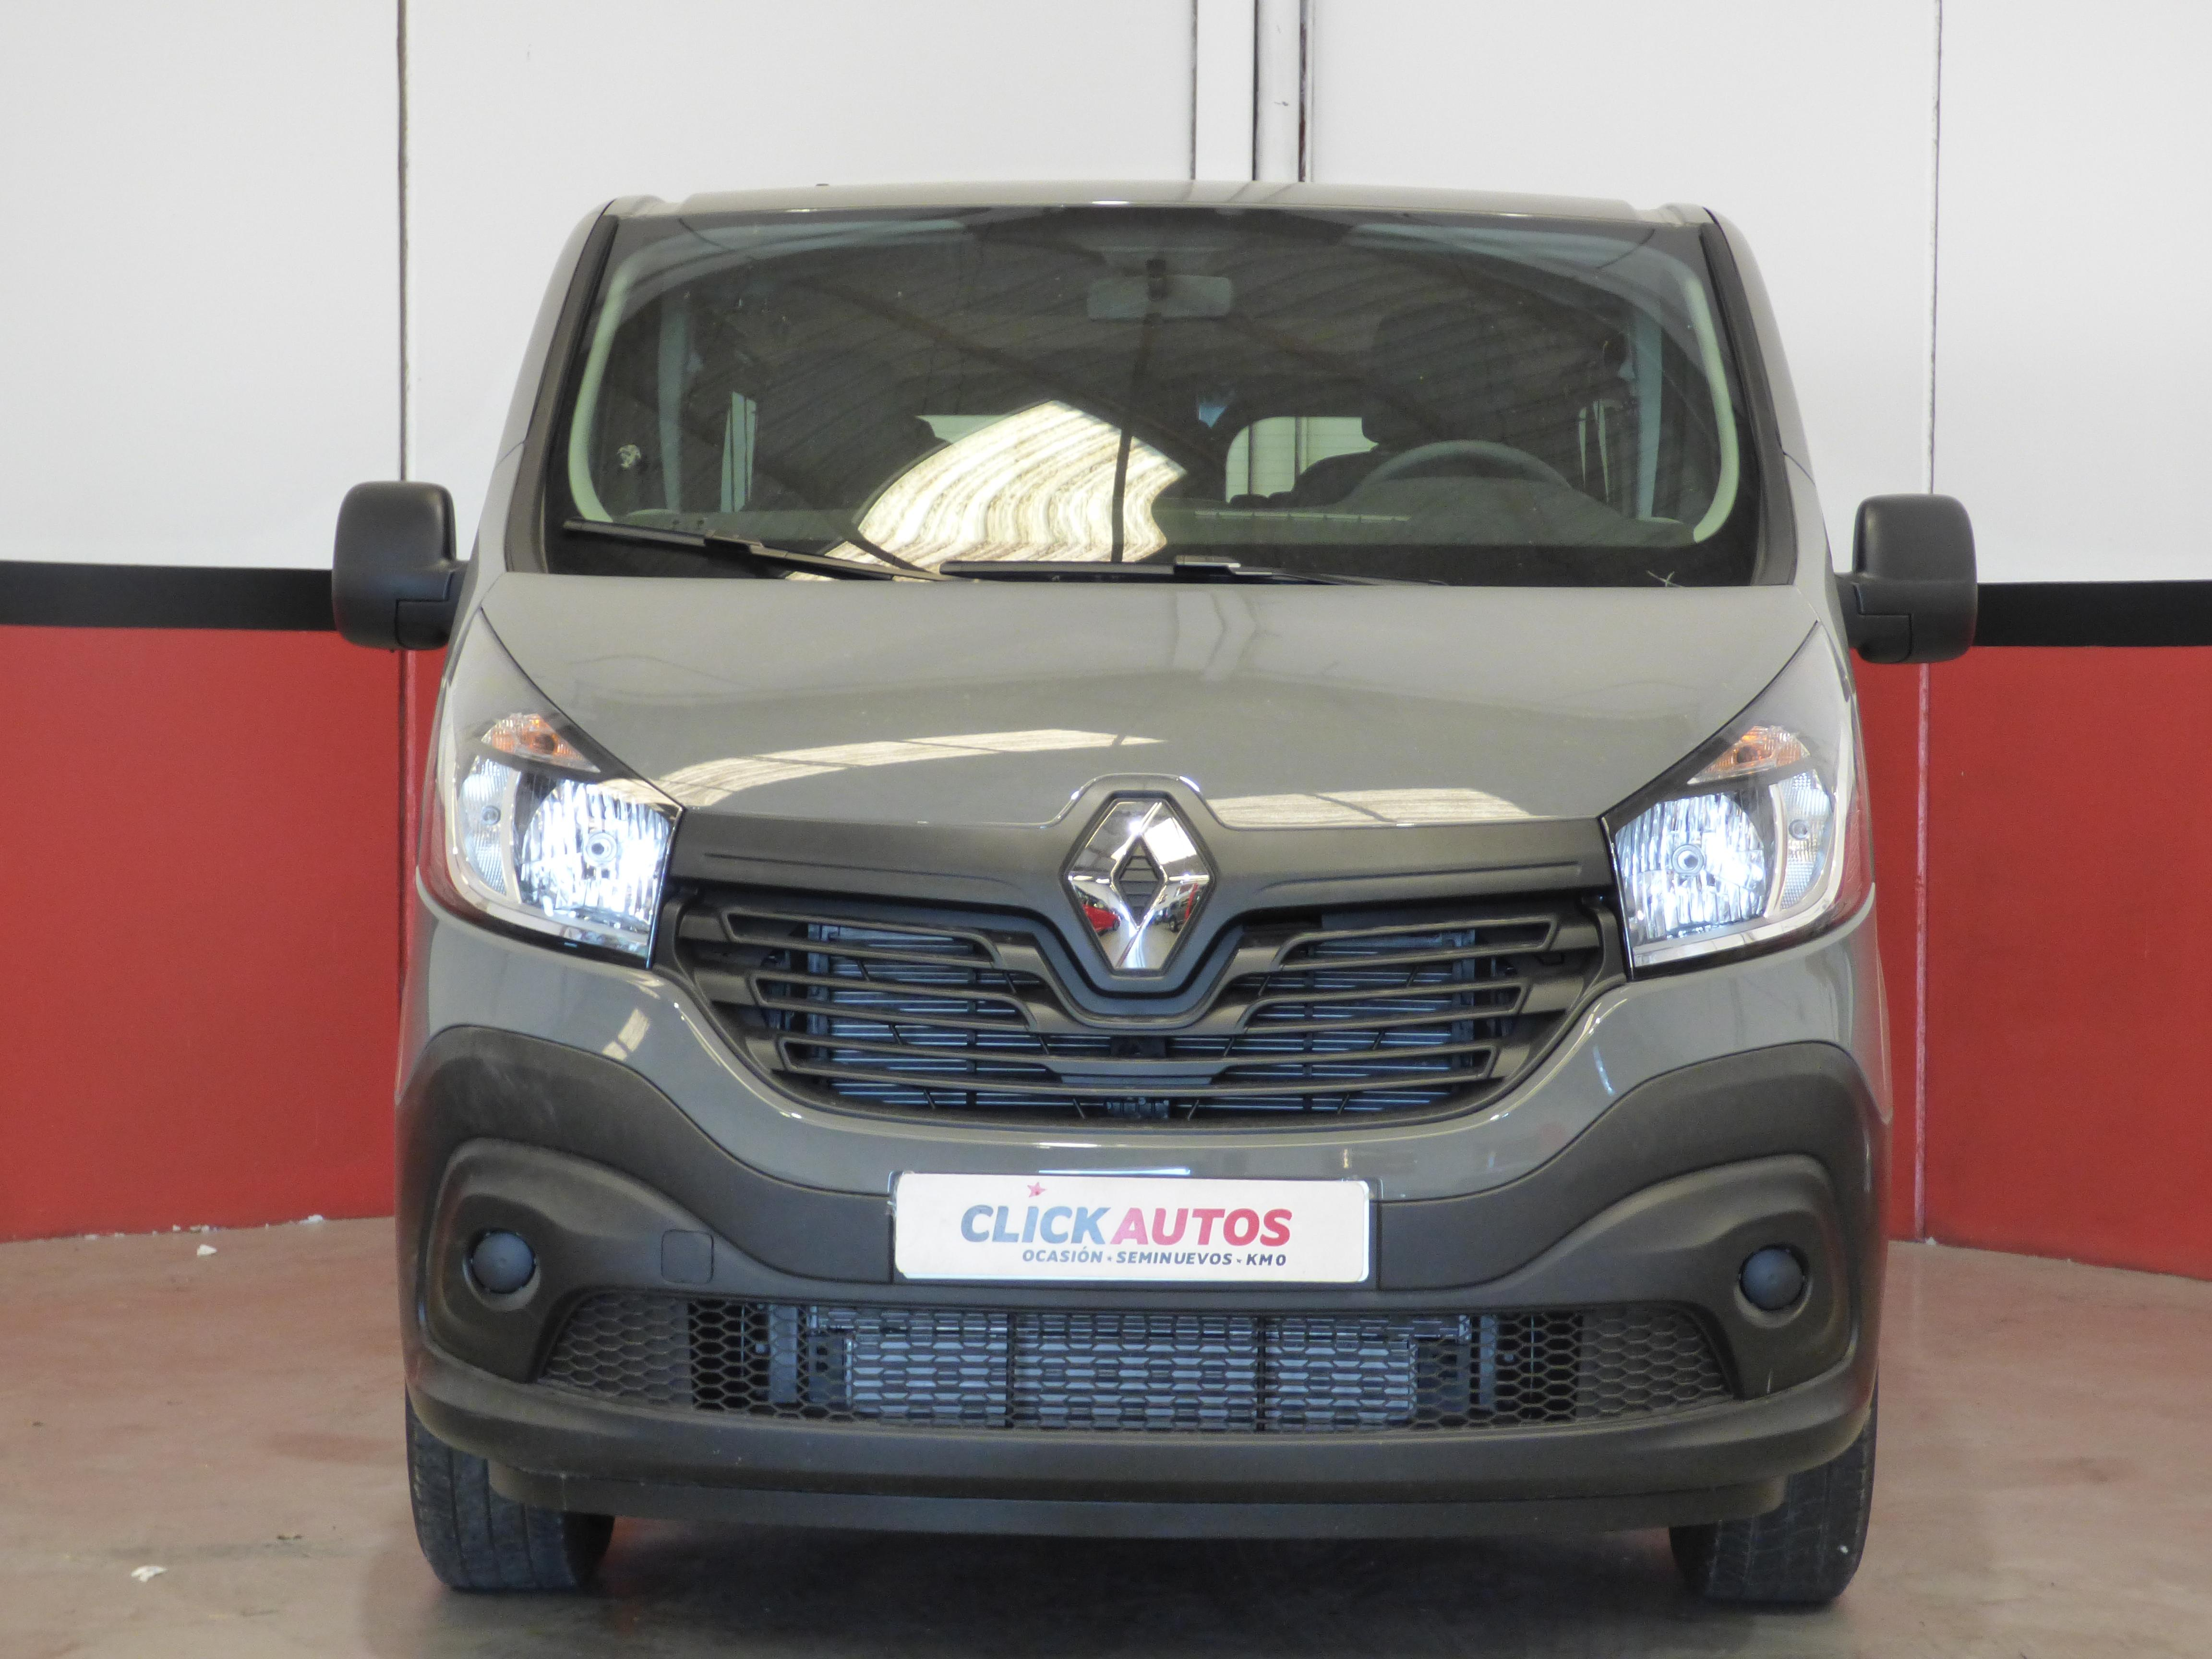 Traffic 1.6 DCI 120CV Combi 9 Energy Largo 18